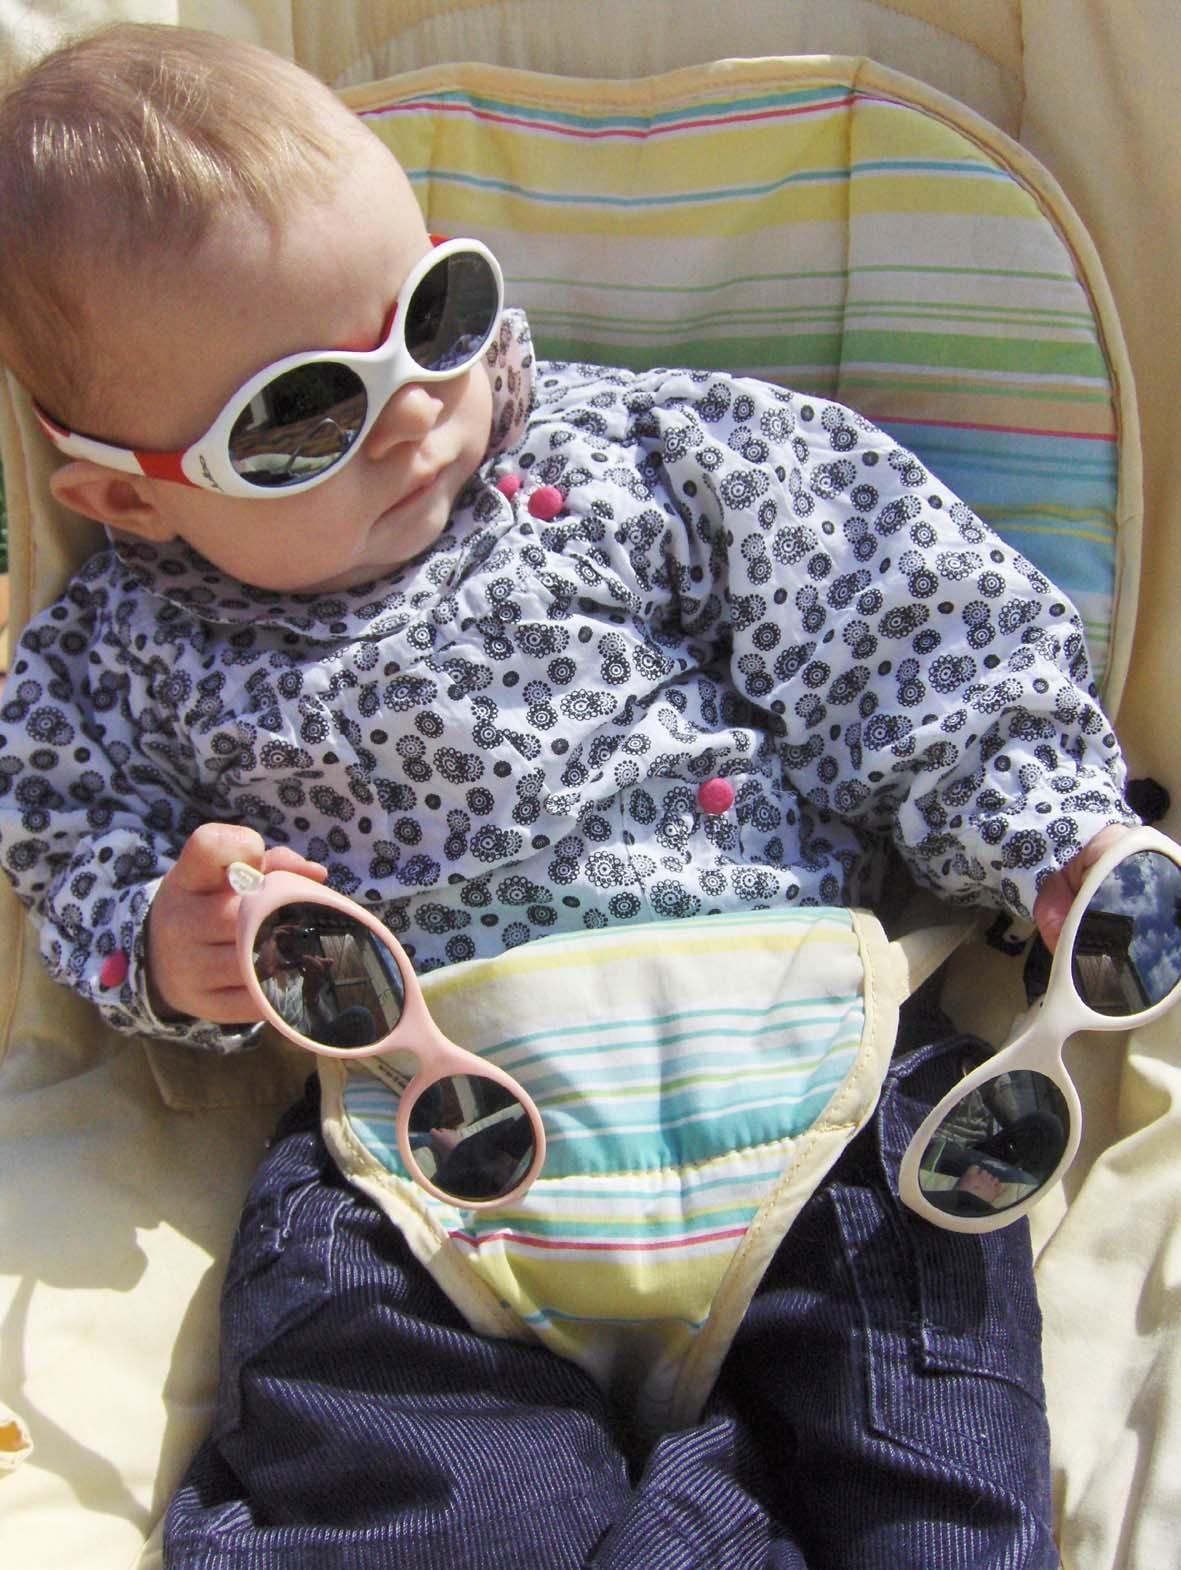 baby wearing sunglasses and holding shades